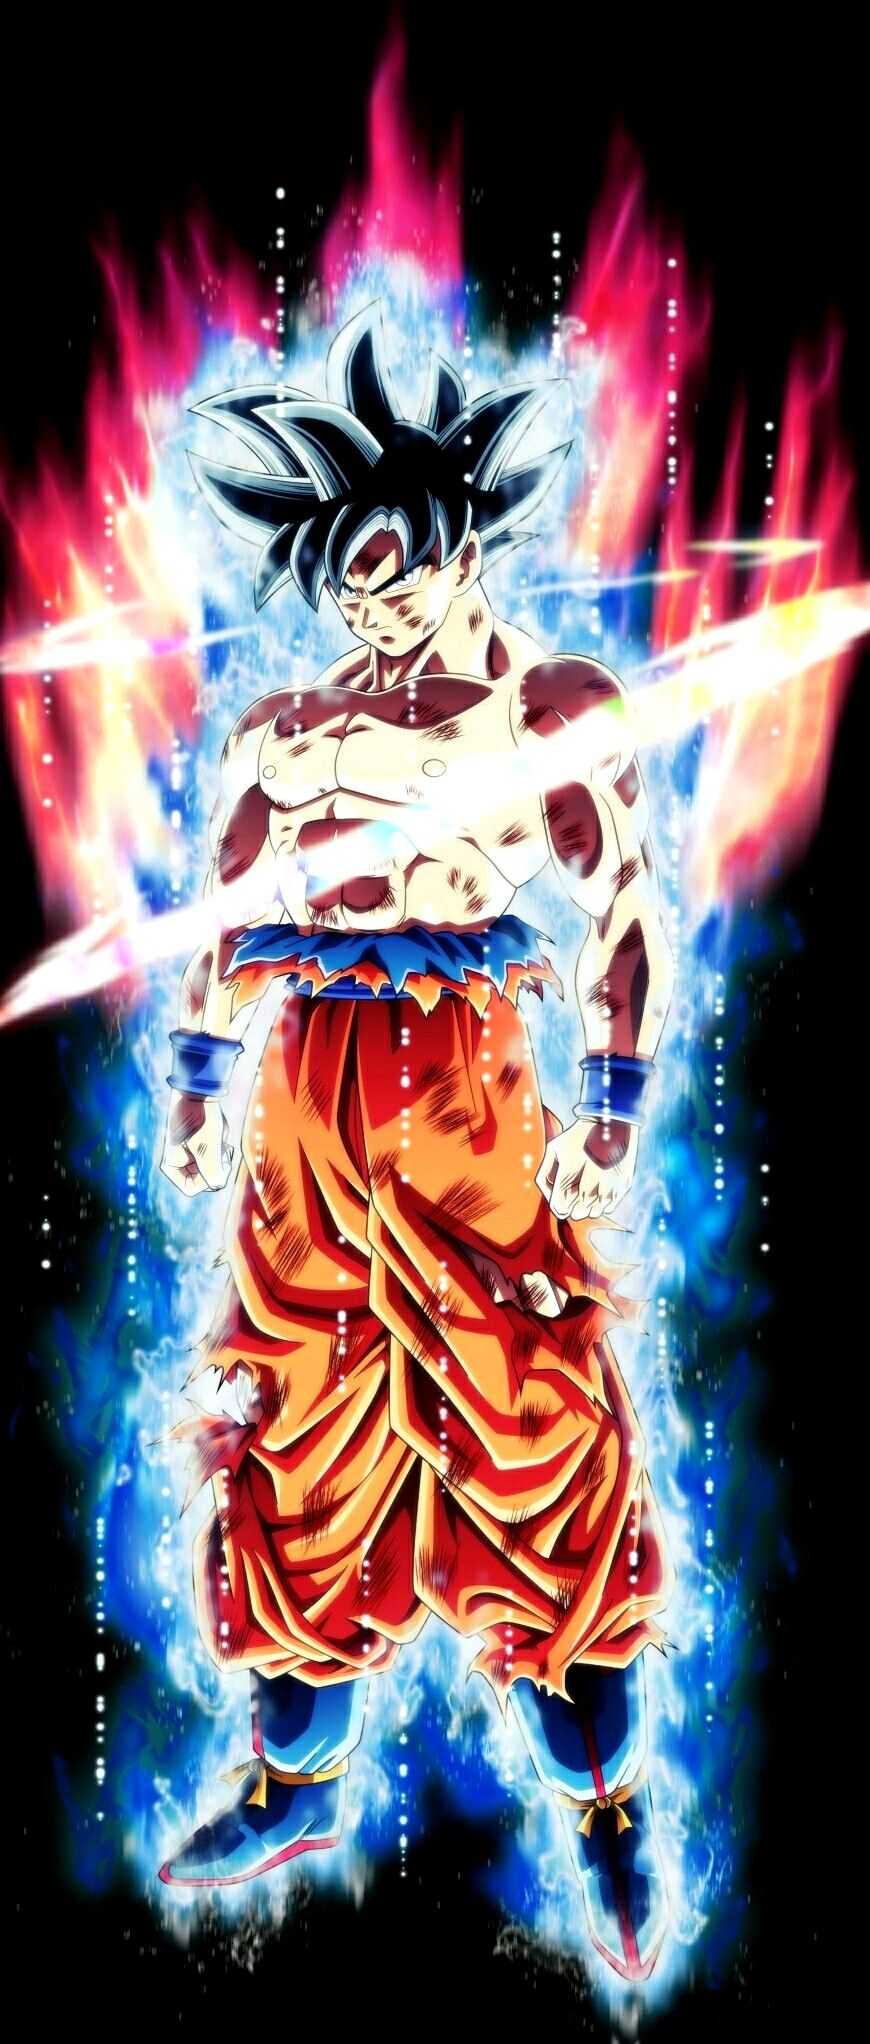 Goku Ultra Instinct Wallpaper 4k Iphone Gallery Dragon Ball Wallpapers Dragon Ball Goku Dragon Ball